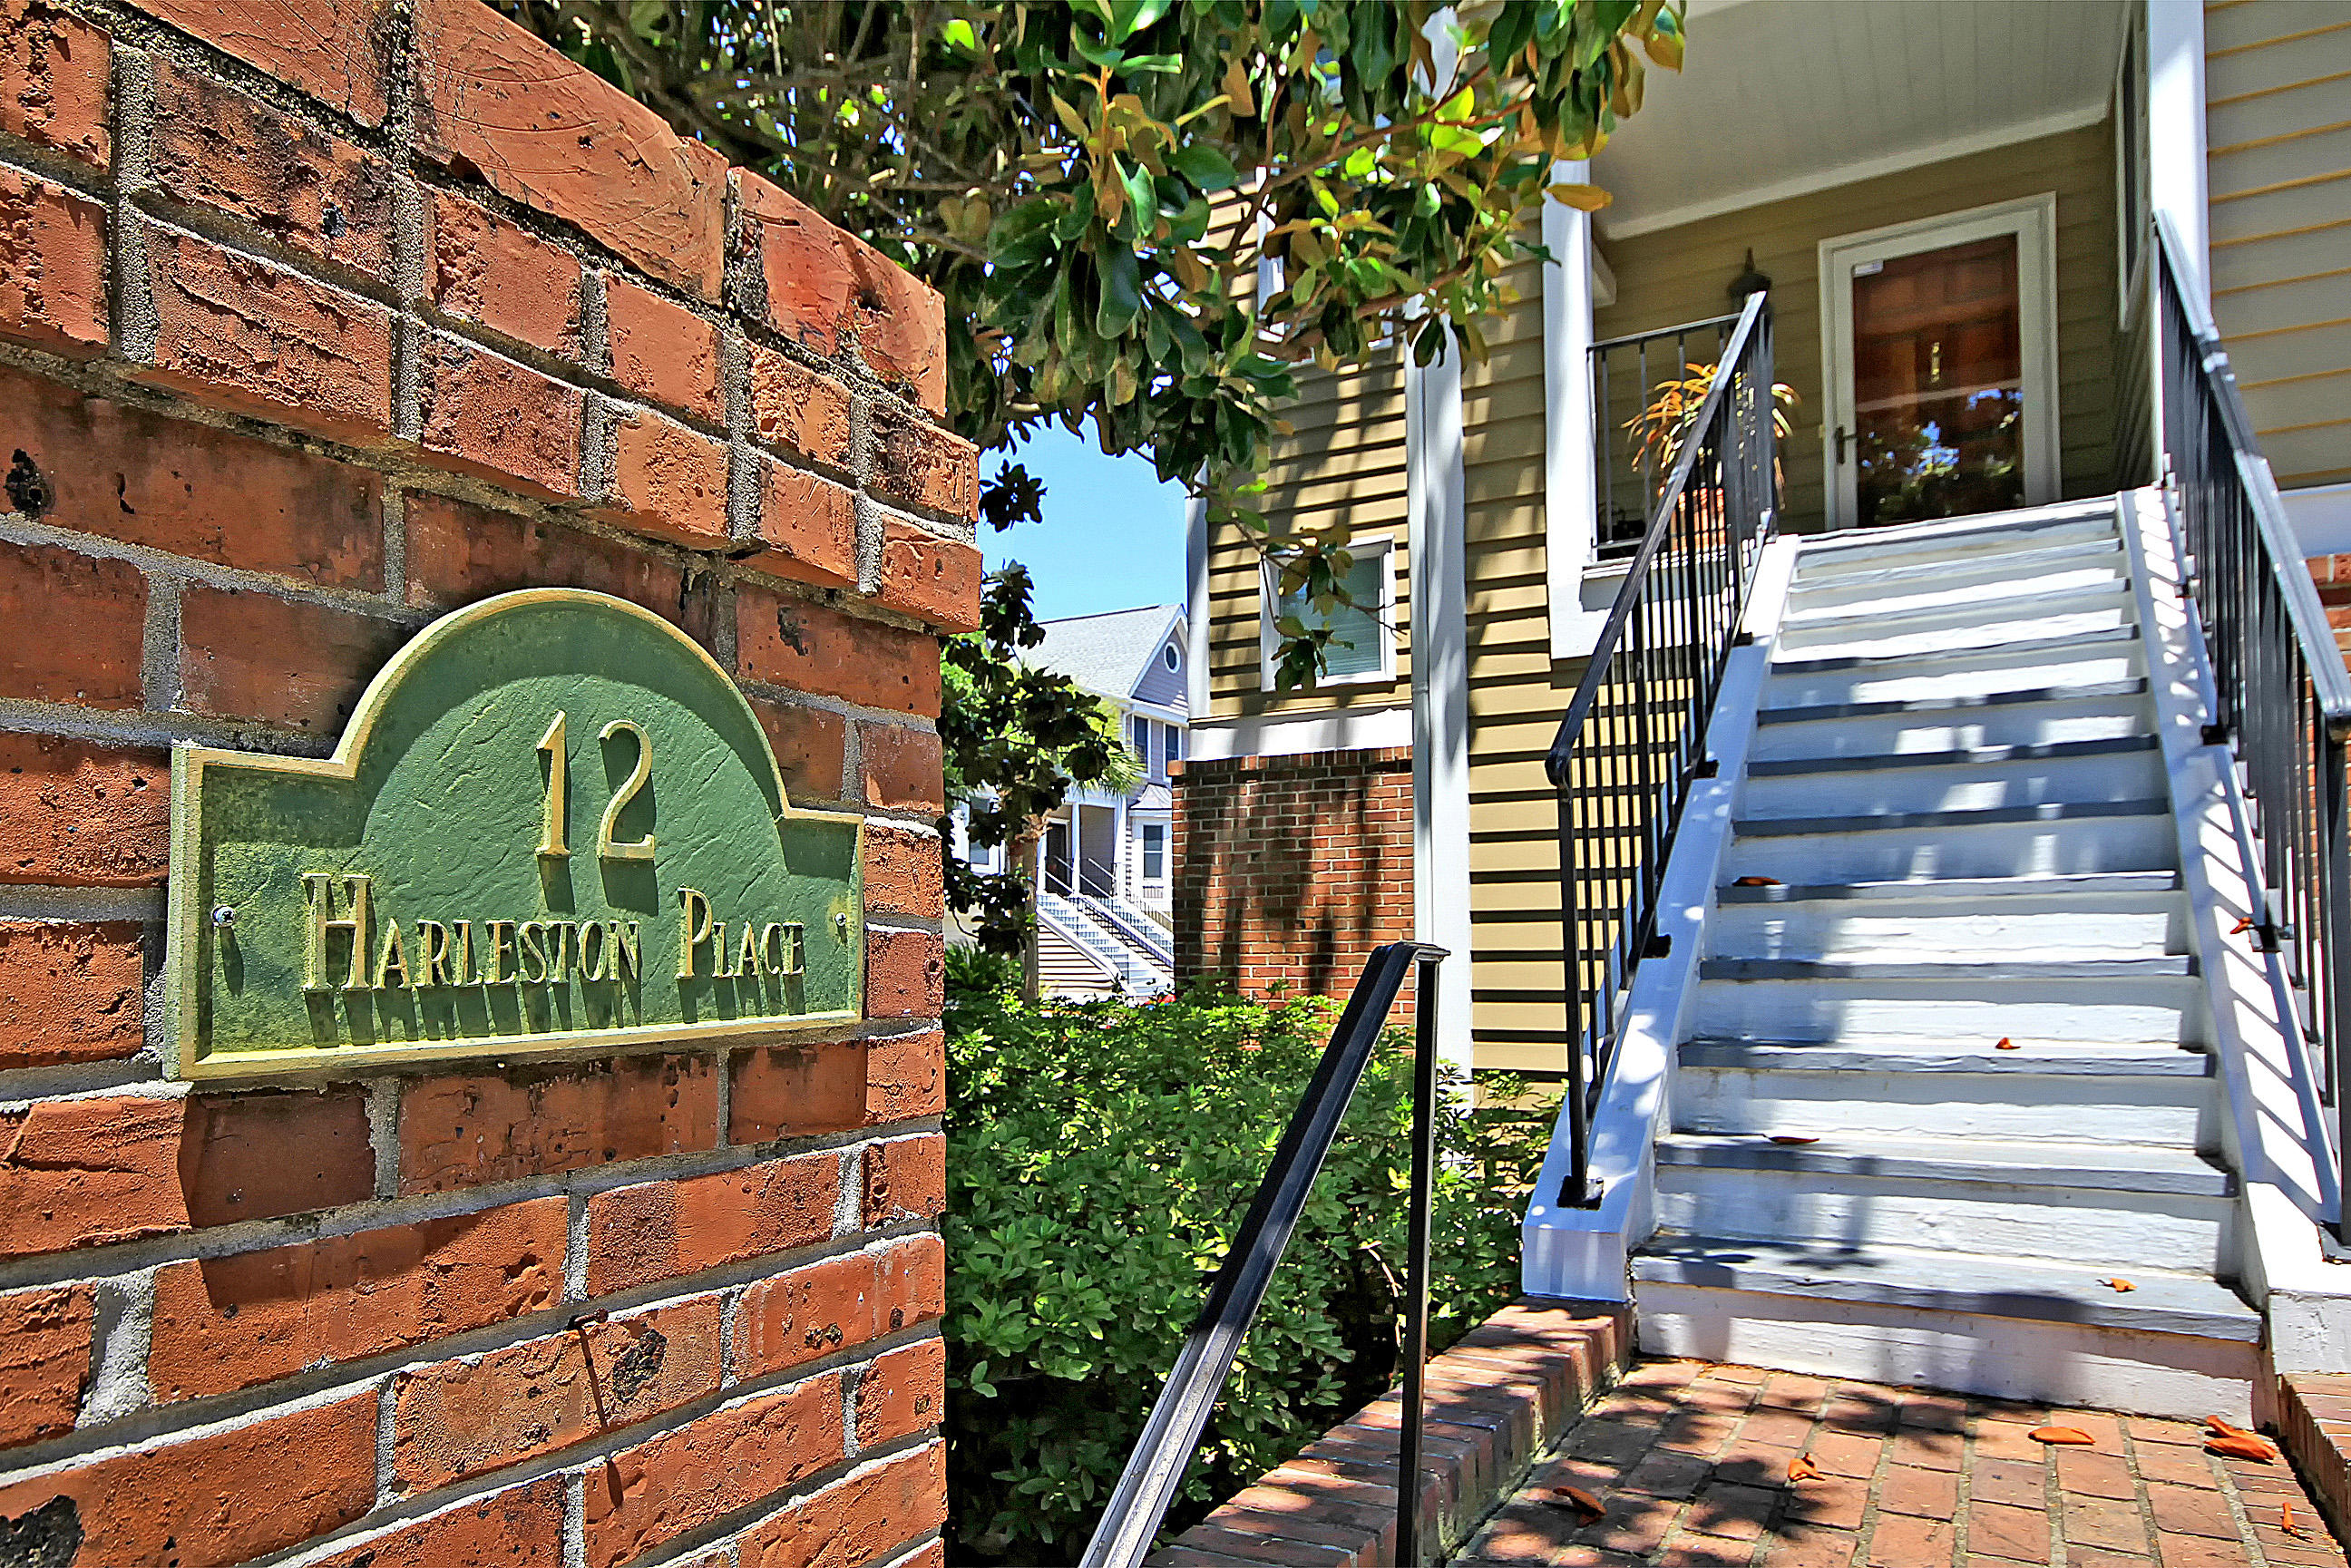 12 Harleston Place Charleston, Sc 29401